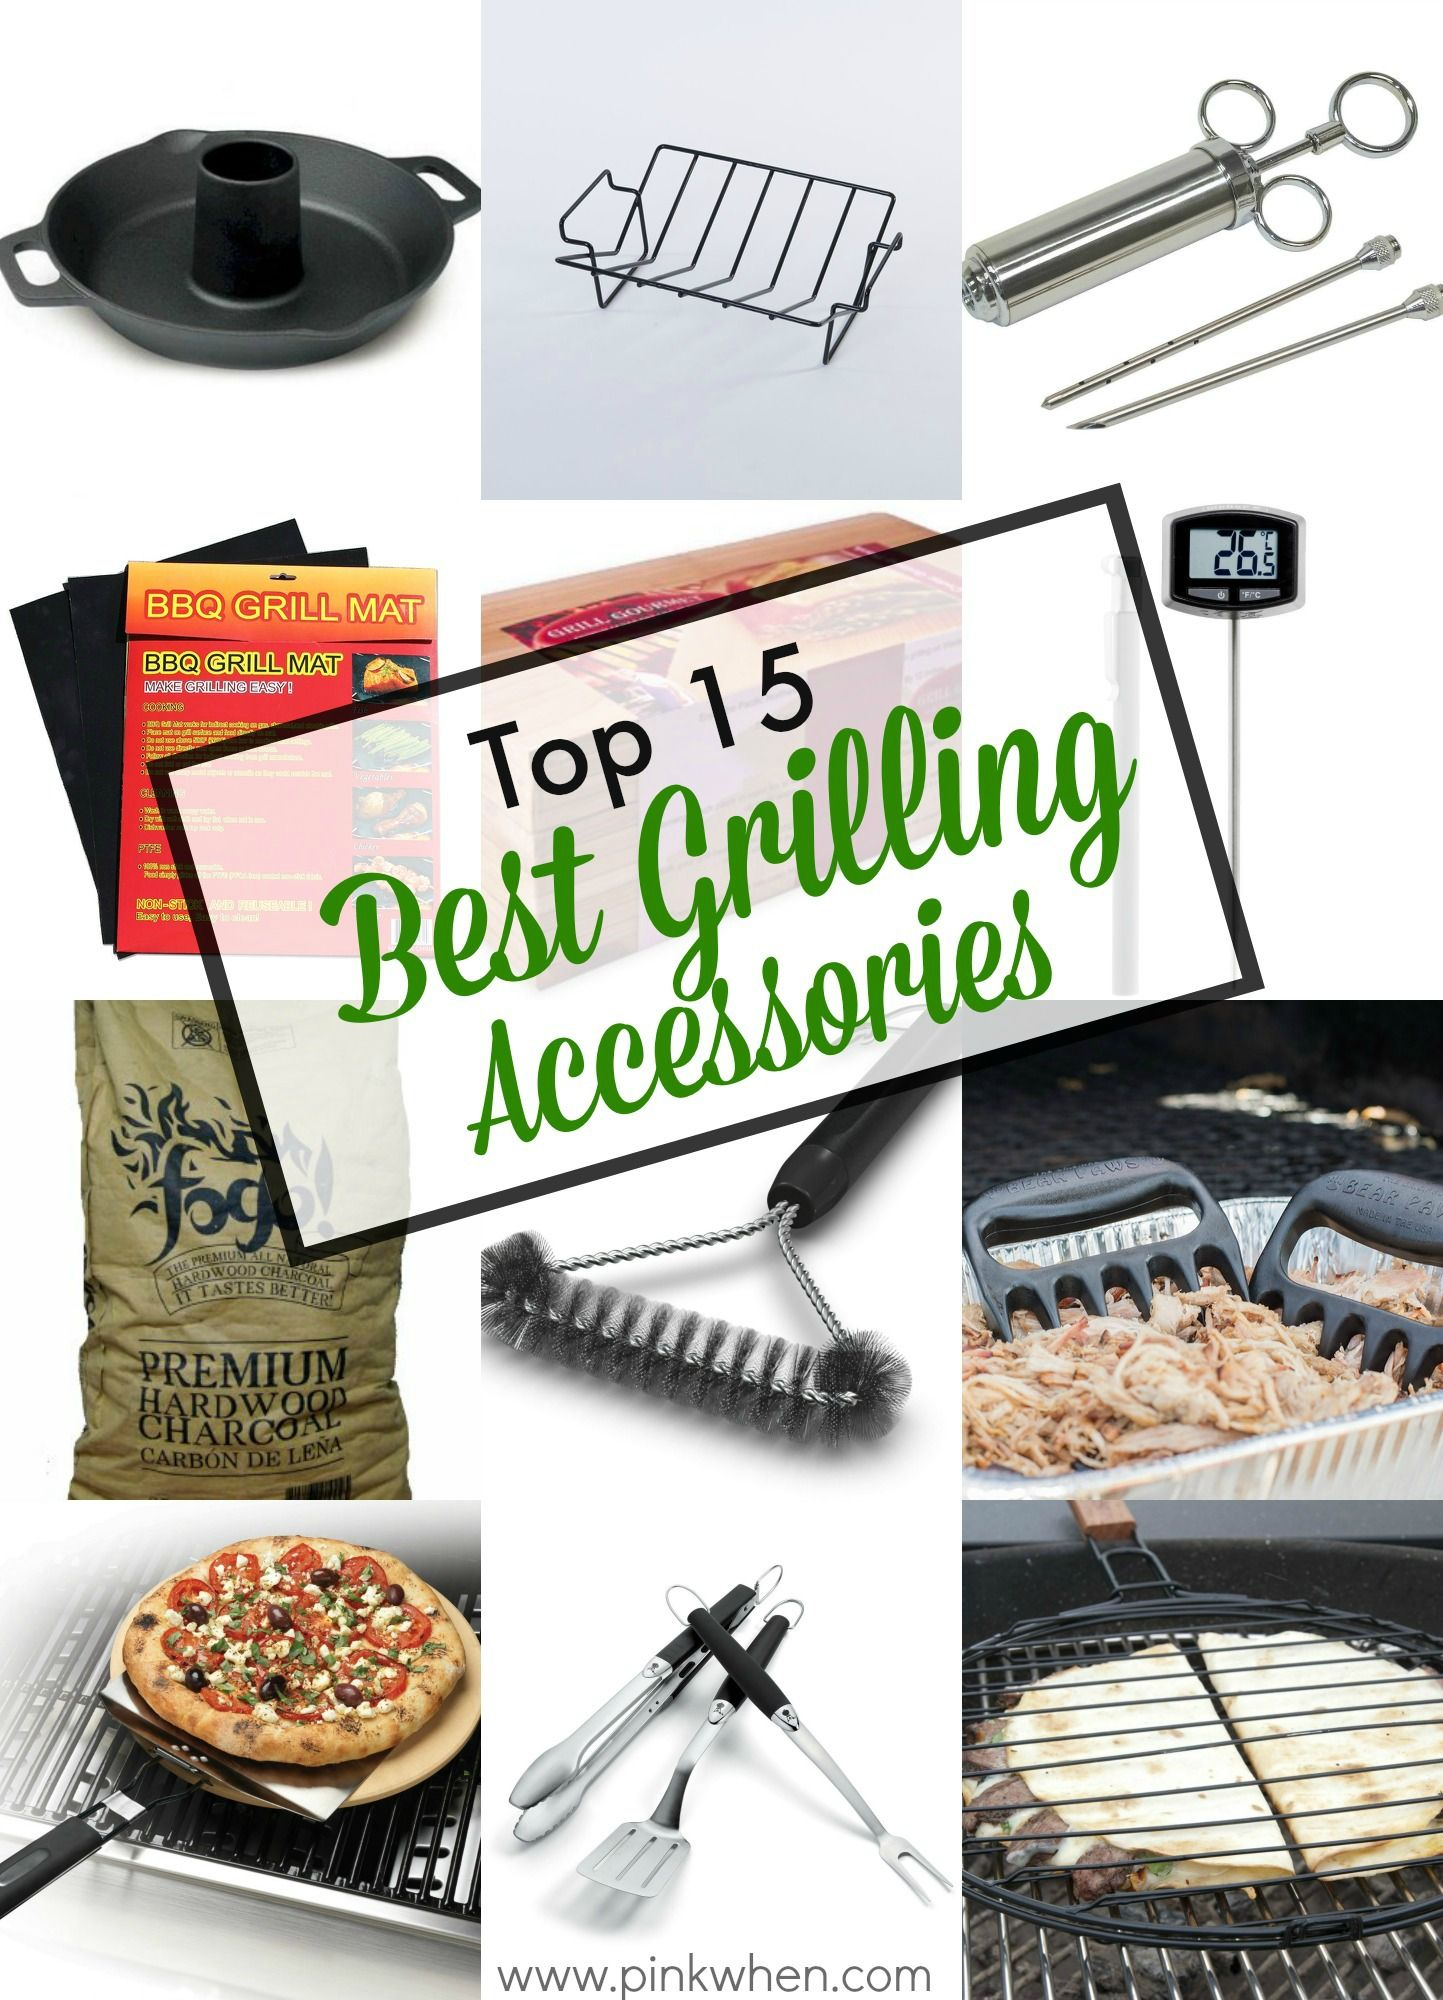 Top 8 Best Grill Accessories  Grilling gifts, Grill accessories